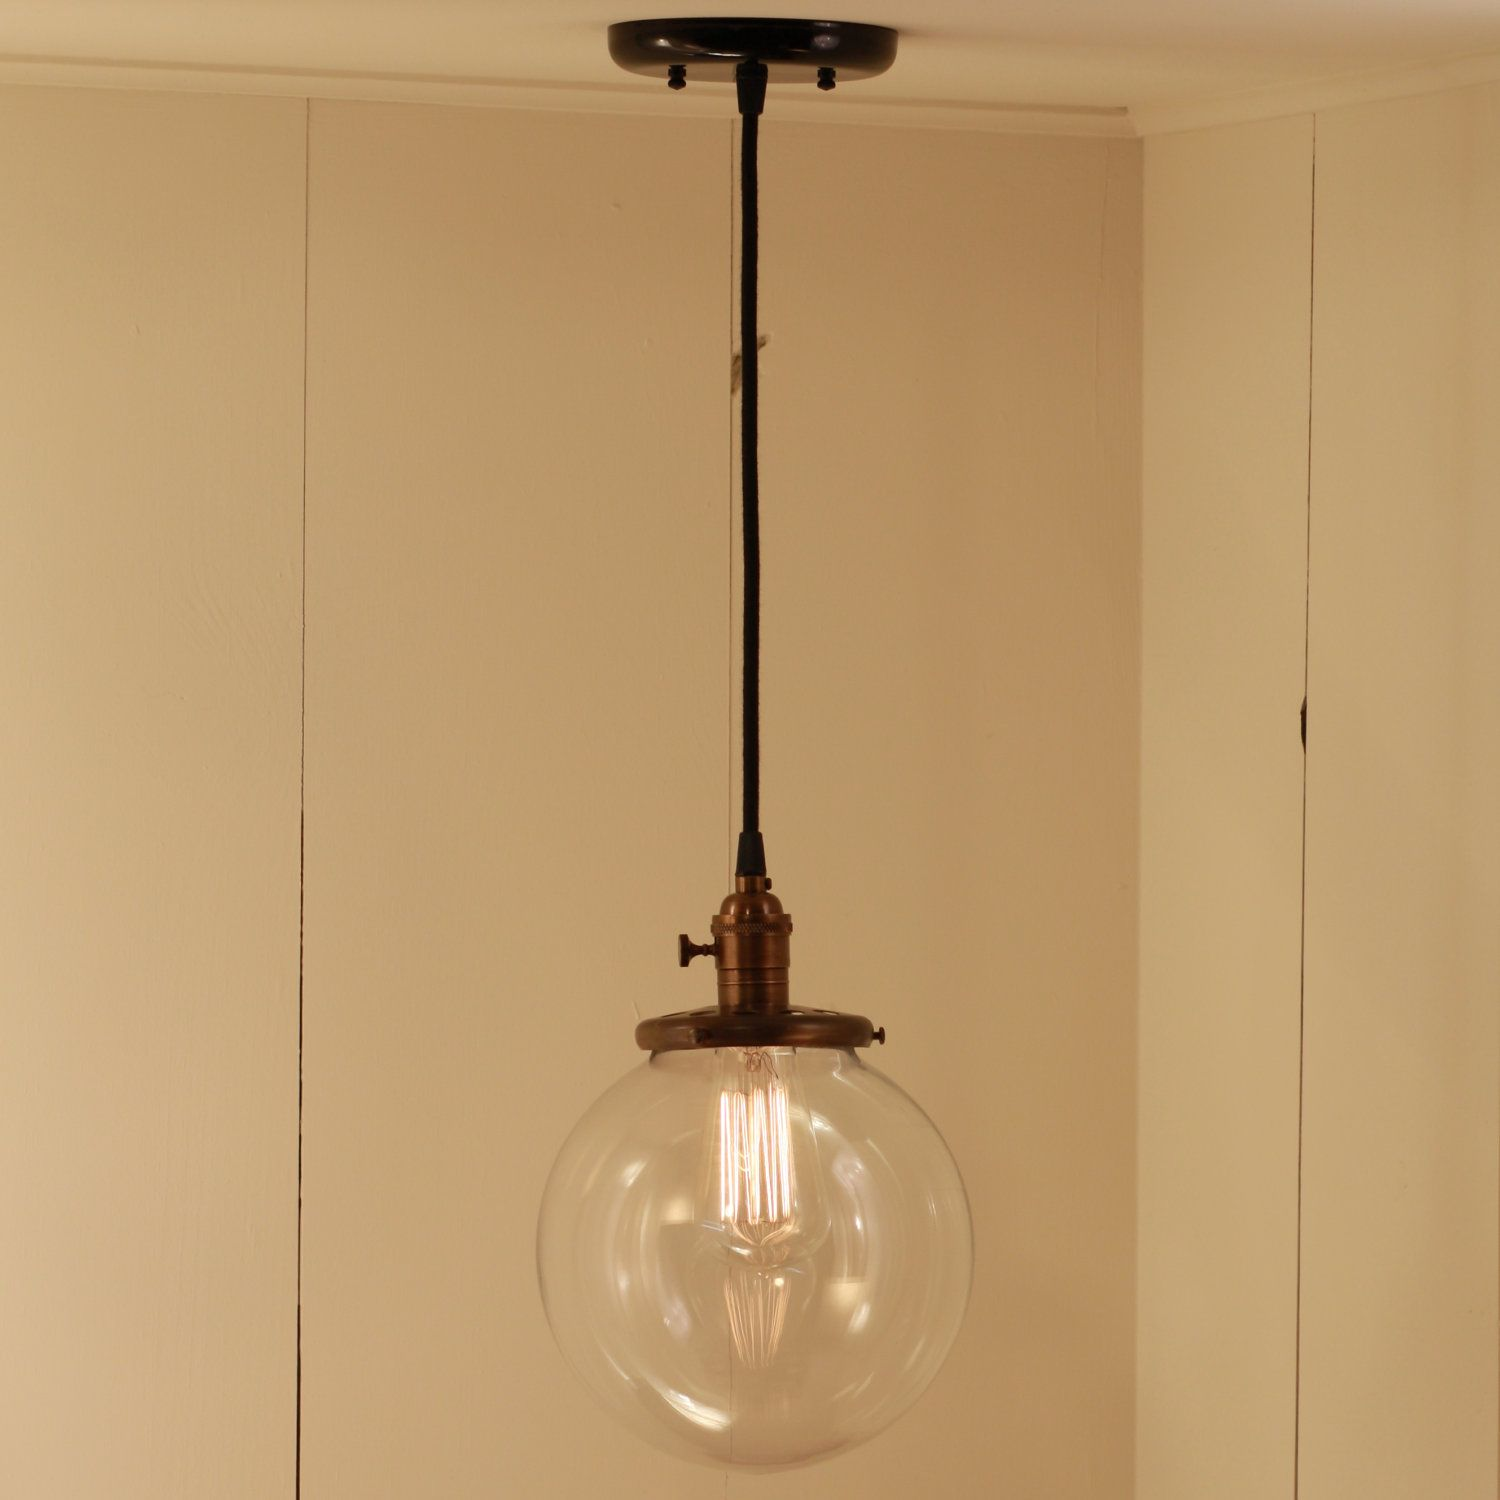 Hanging Globe Light Fixtures